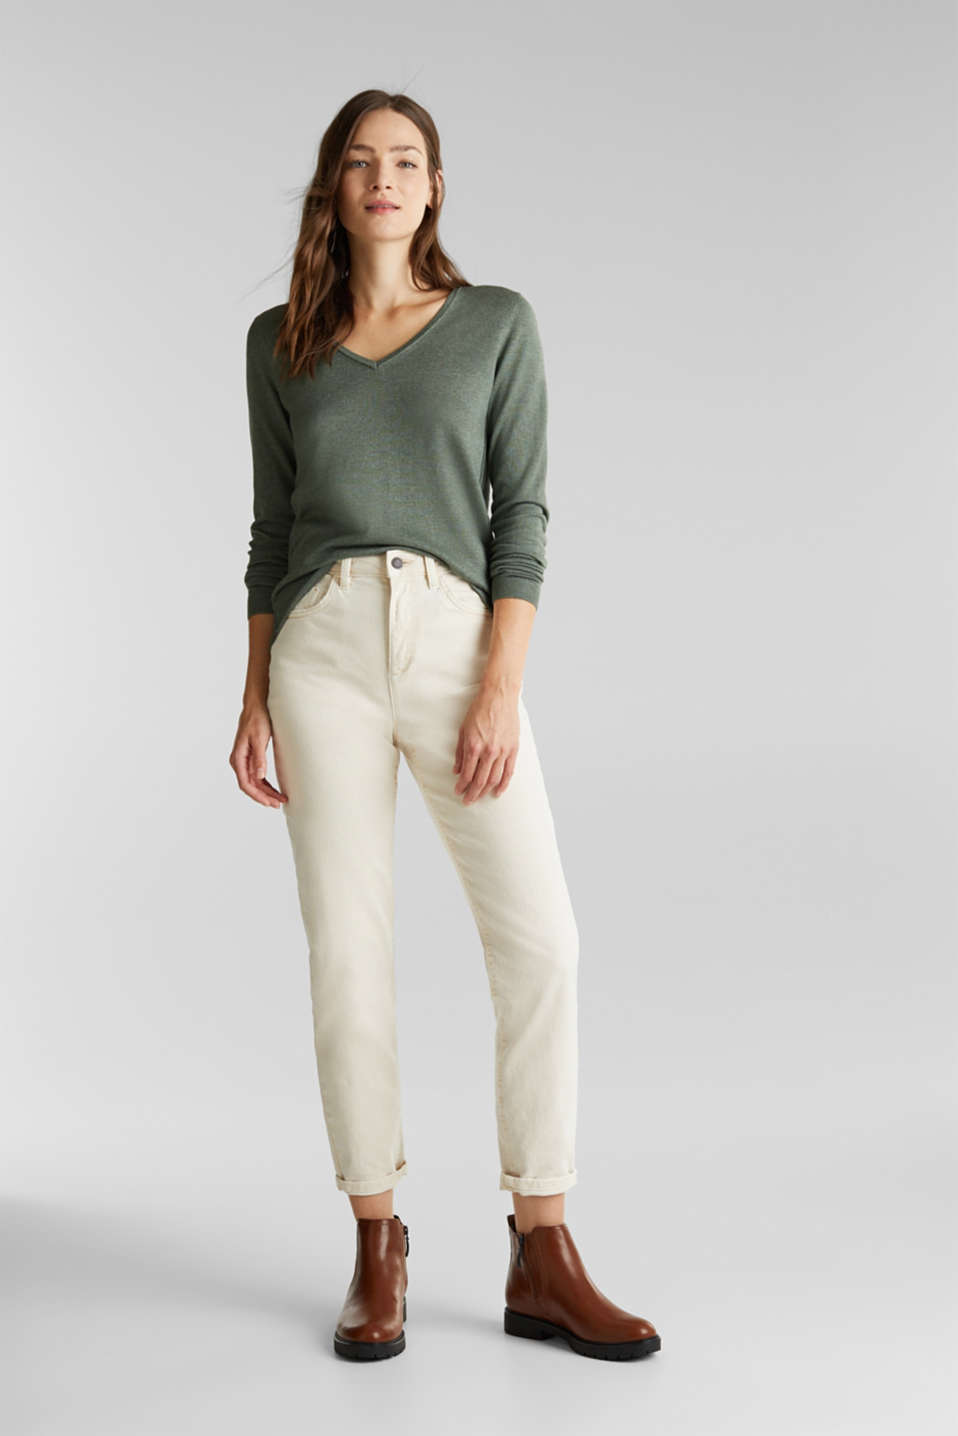 Jumper with organic cotton, KHAKI GREEN 5, detail image number 1